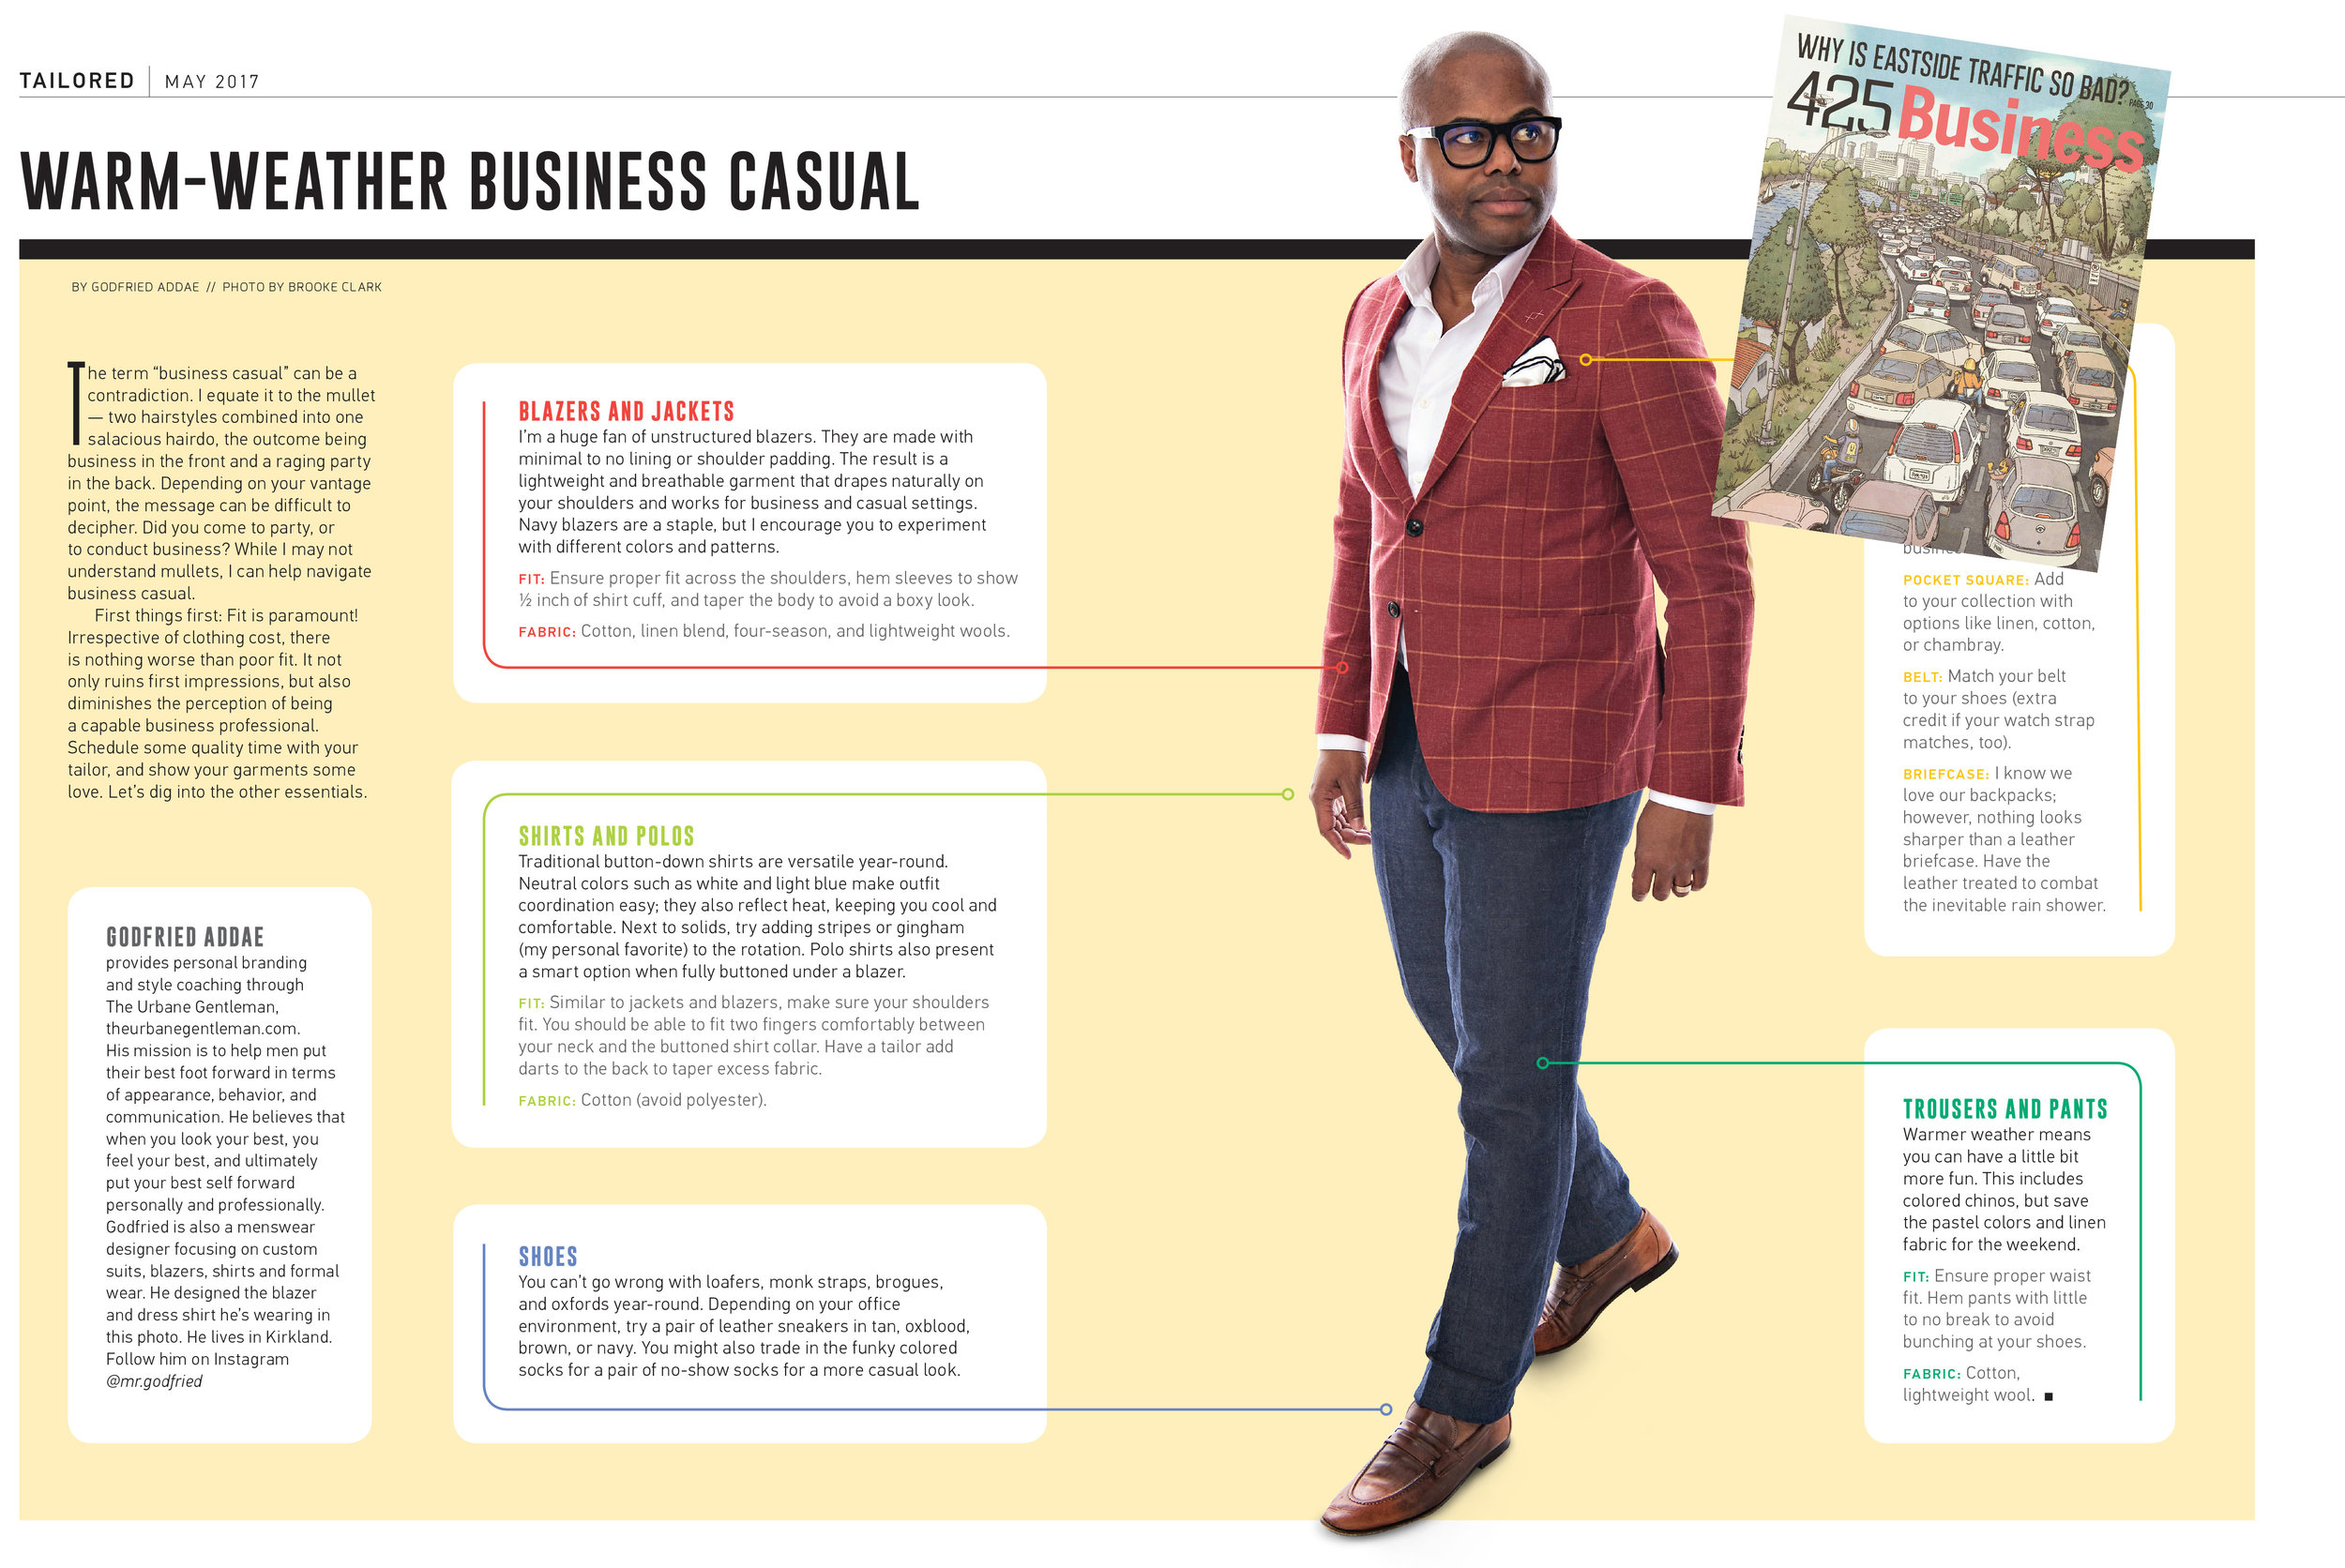 425 Business Magazine_Mens Warm-weather business casual